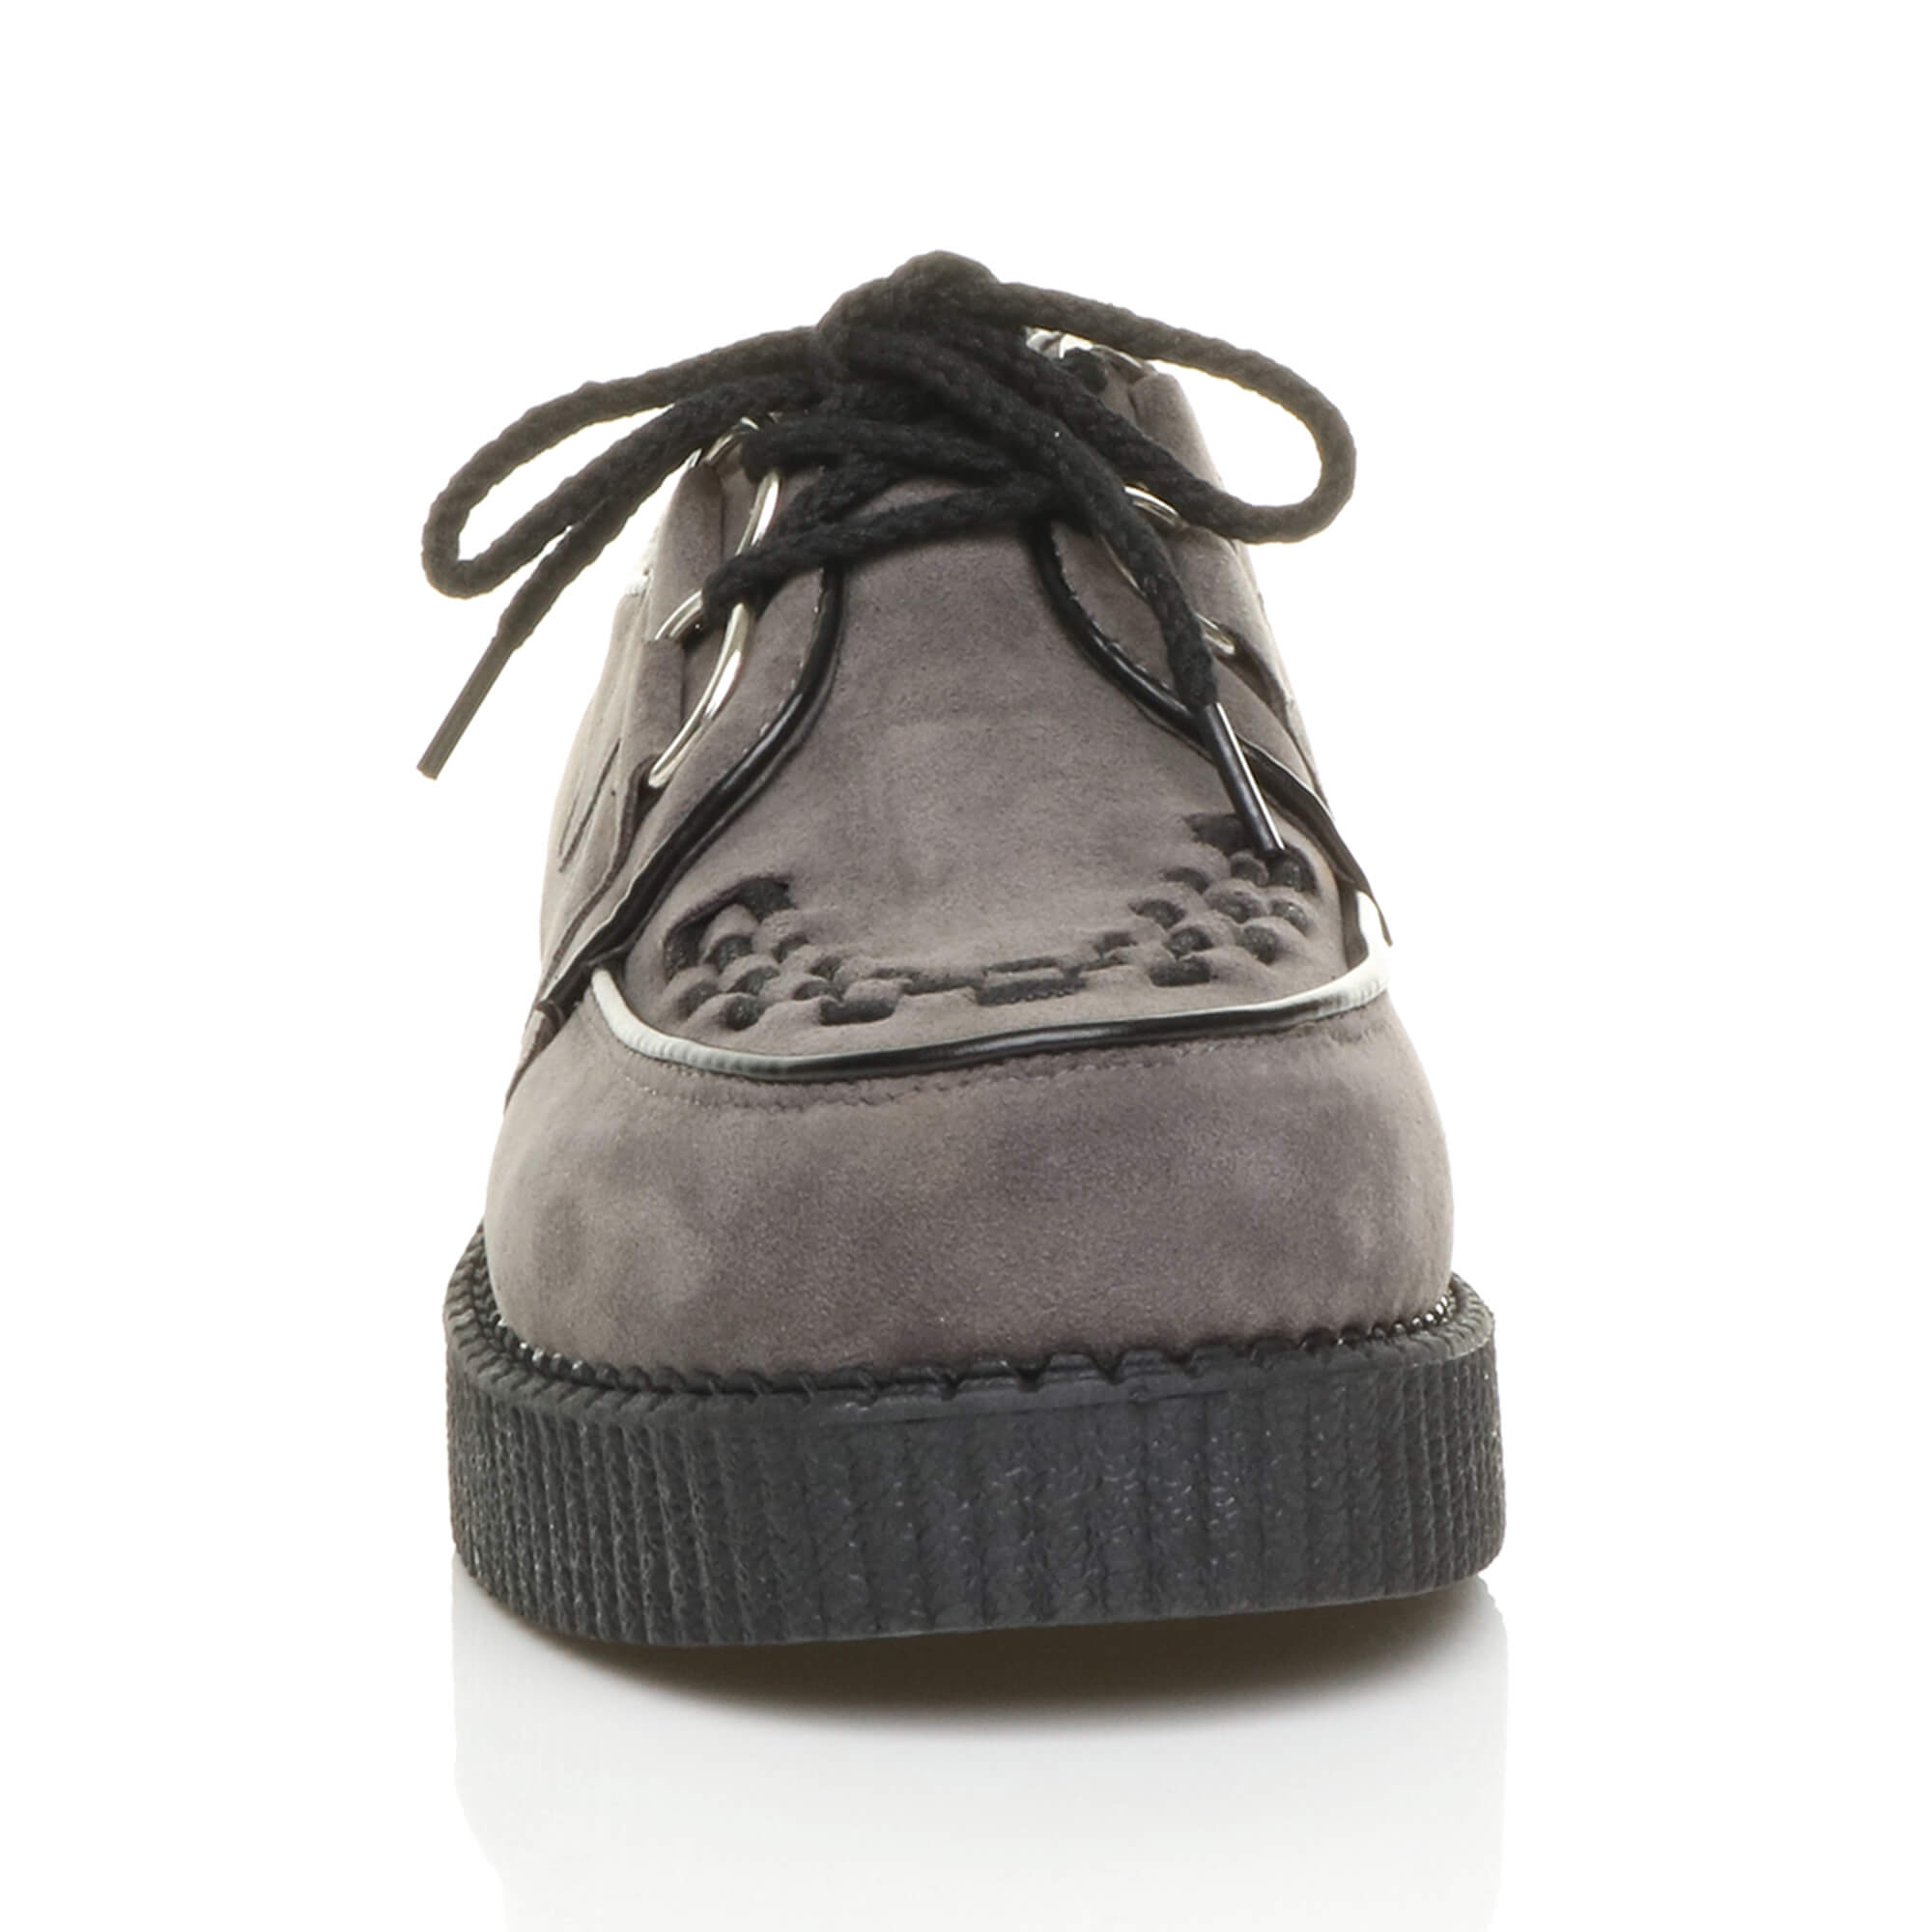 MENS-PLATFORM-WEDGE-LACE-UP-GOTH-PUNK-BROTHEL-CREEPERS-BEETLE-CRUSHERS-SHOES thumbnail 34